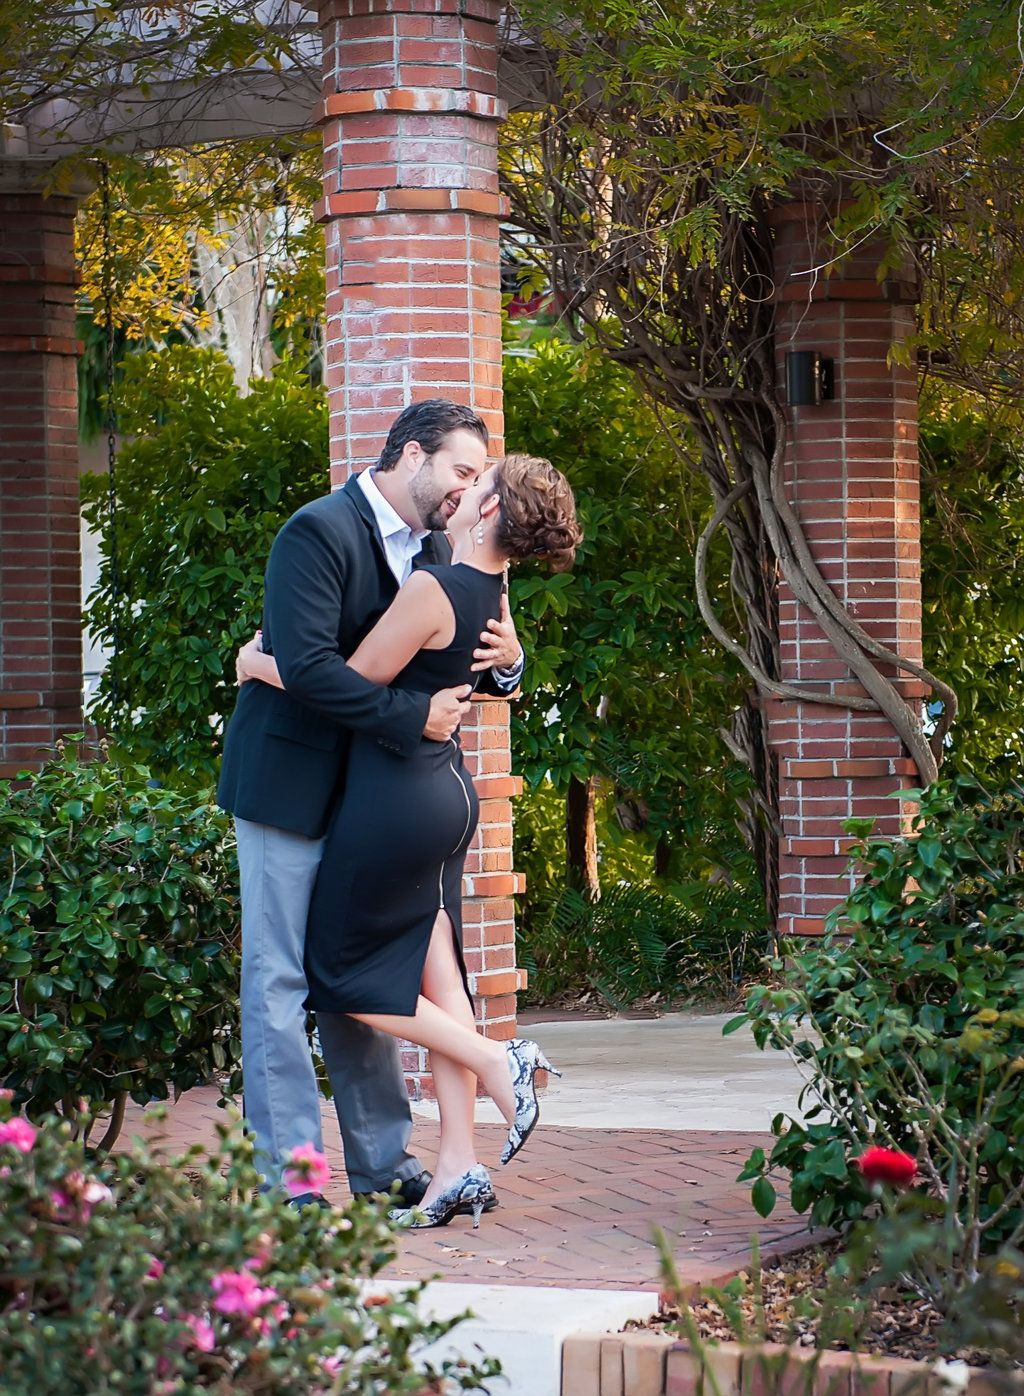 Pin On Family Photography By Christy Ofria Photography